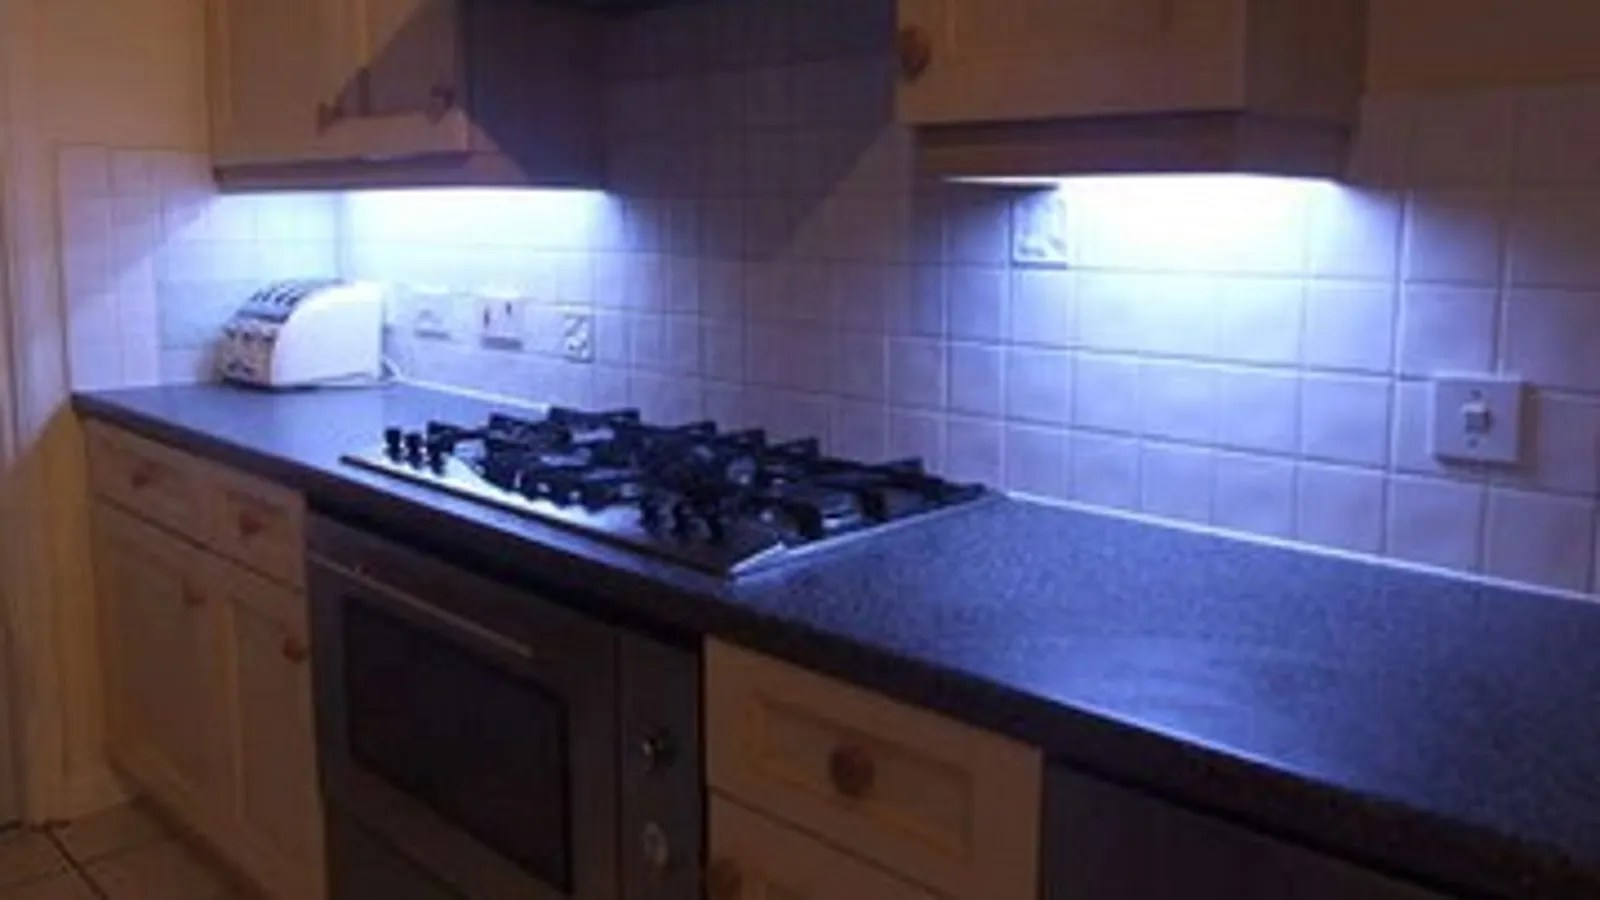 DIY Under-Cabinet LED Lighting With Fade Effects